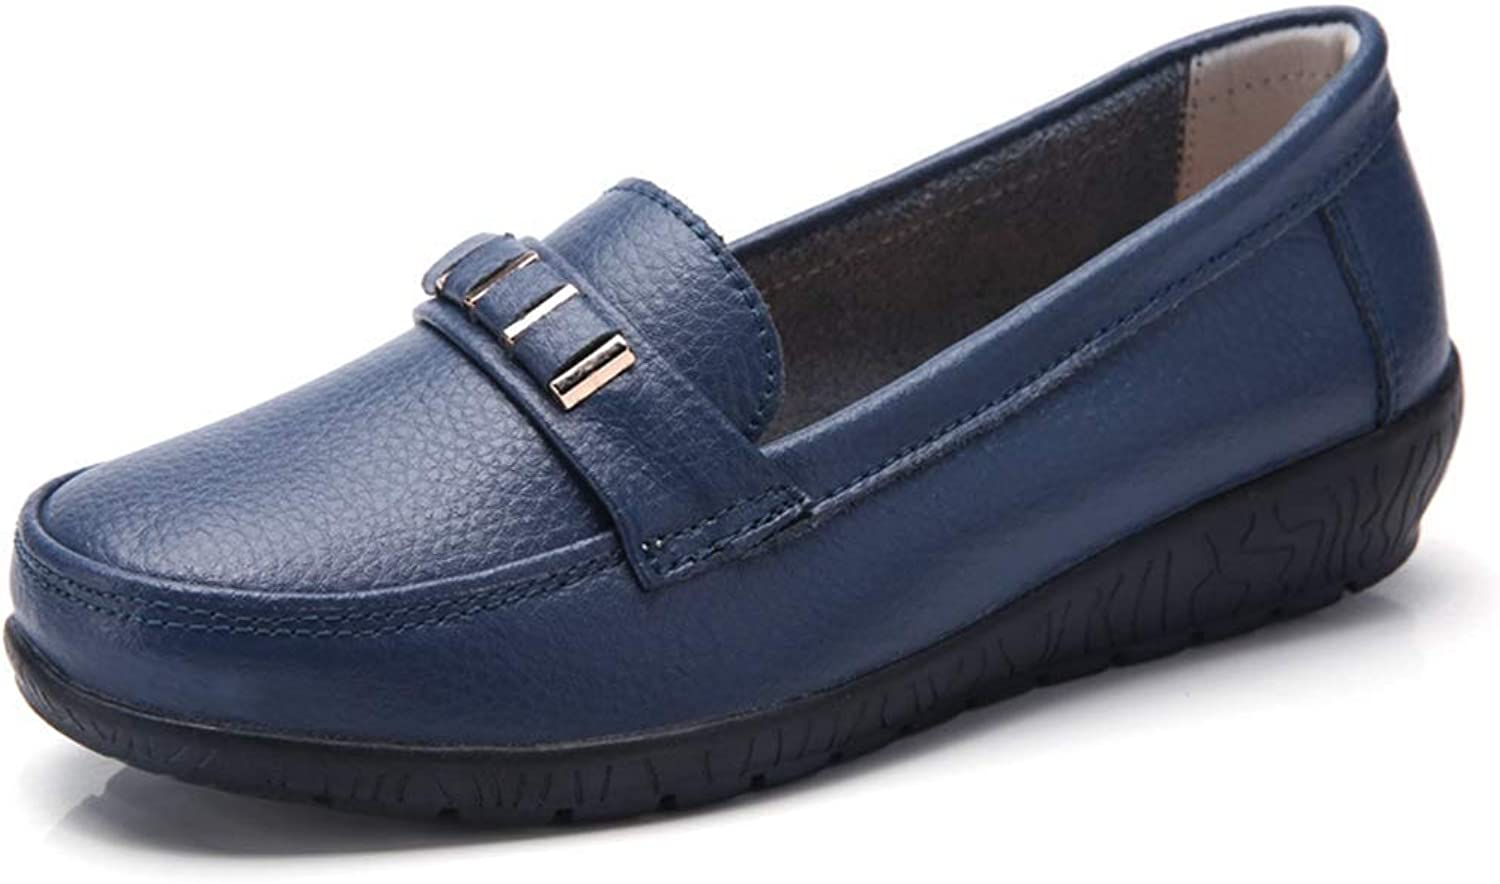 Fashion shoesbox Women's Leather Loafers Casual Slip On Cowhide Round Toe Moccasins Comfort Driving Flats Boat shoes Oxford Loafer